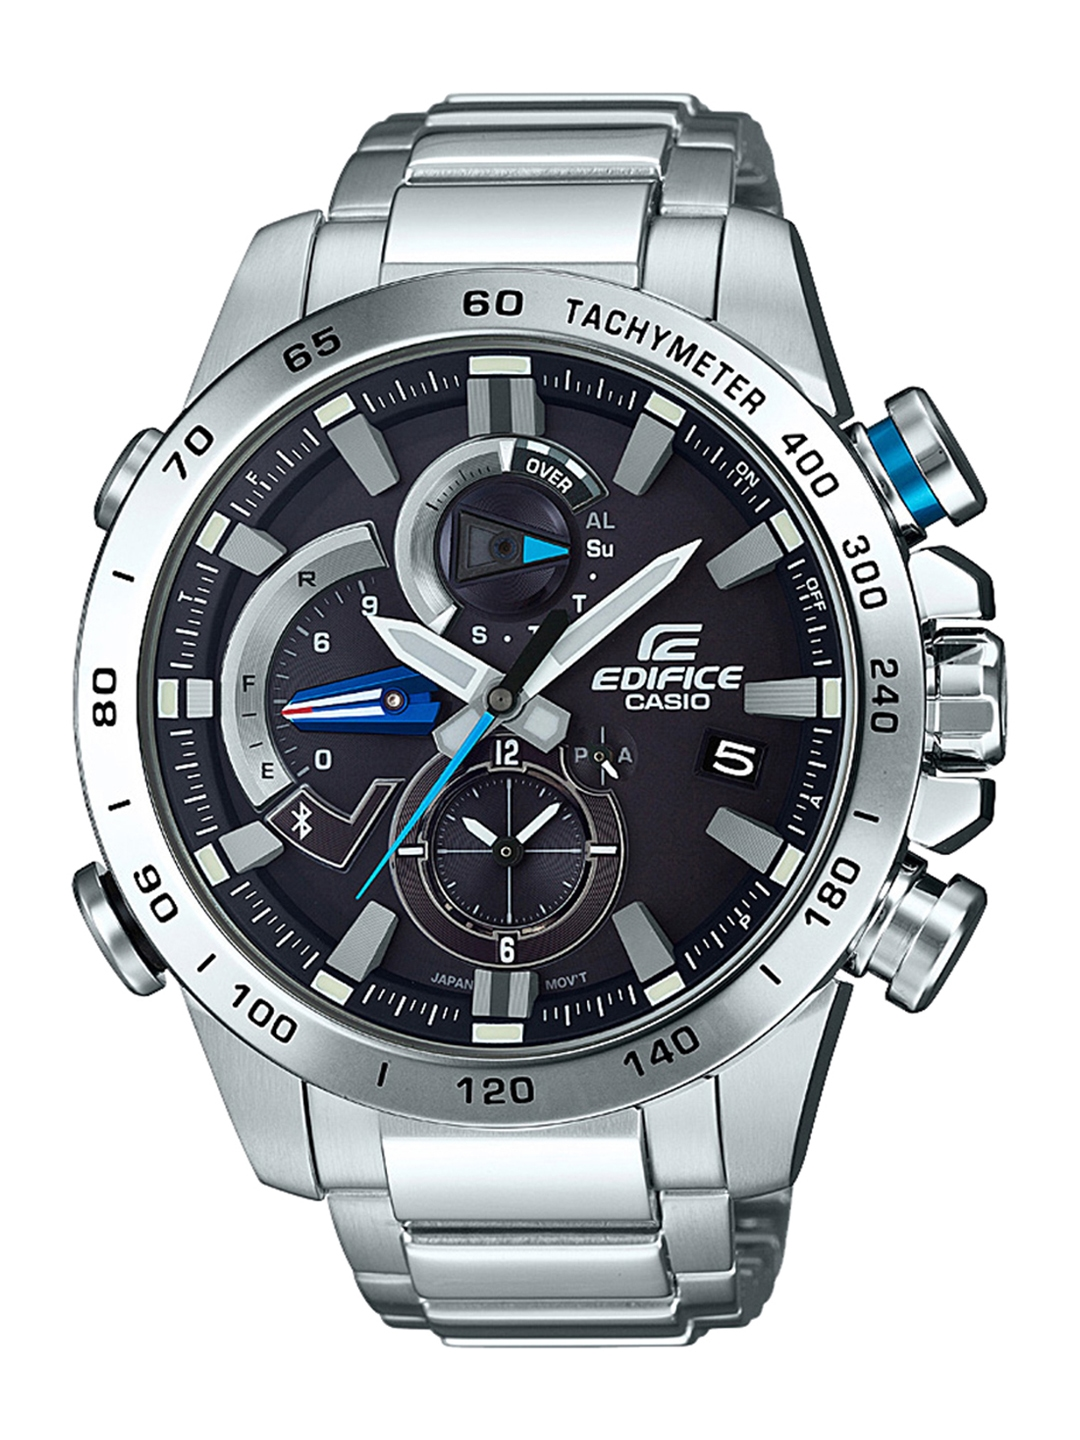 b3356c03d53 Buy CASIO Men Black Analogue Watch EX402 - Watches for Men 7080642 ...